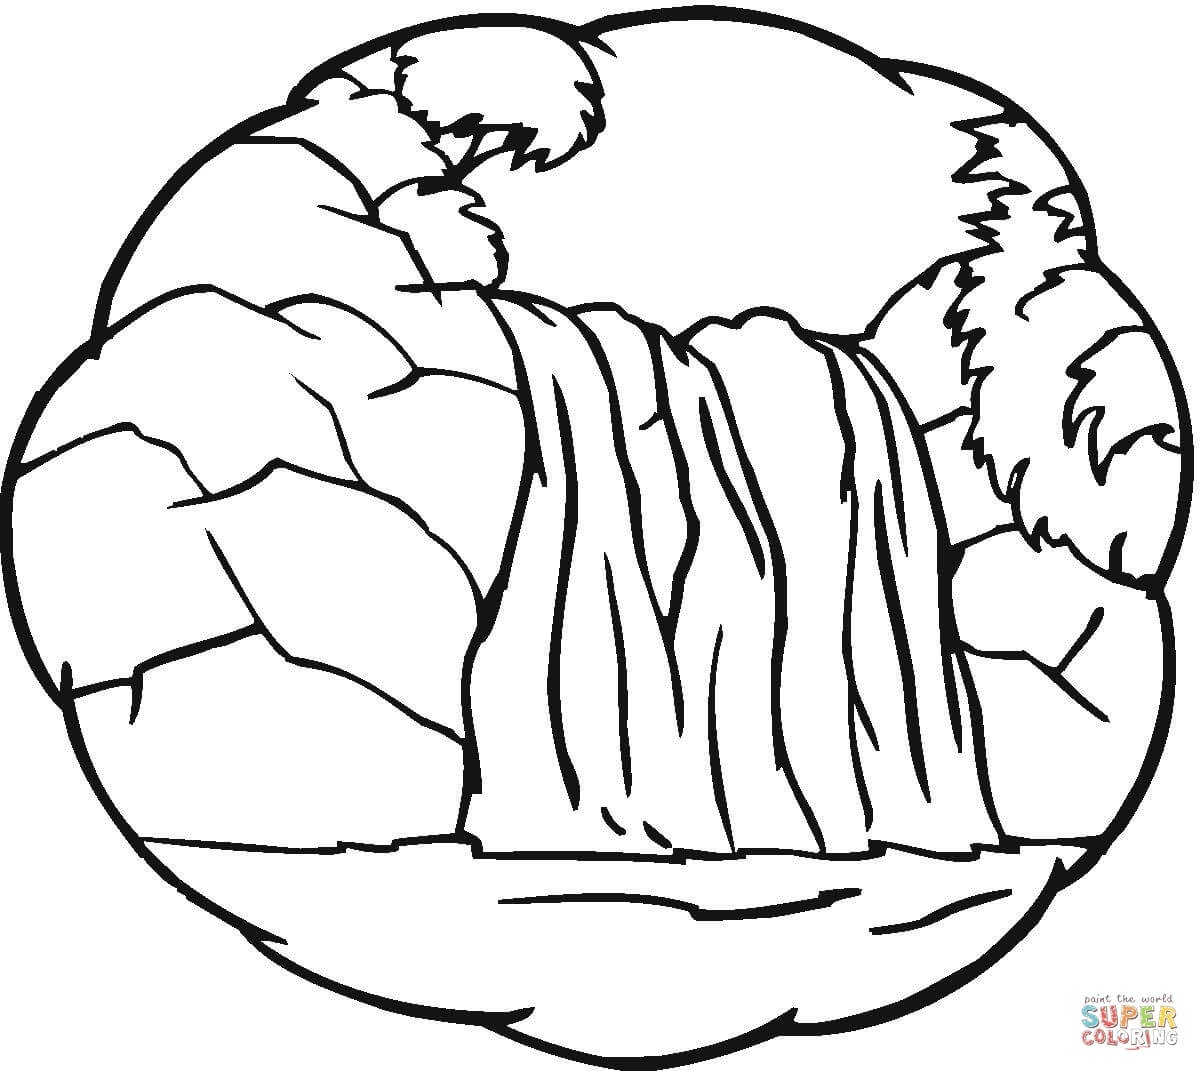 Little Waterfall Coloring Page | Free Printable Coloring Pages - Free Printable Waterfall Coloring Pages